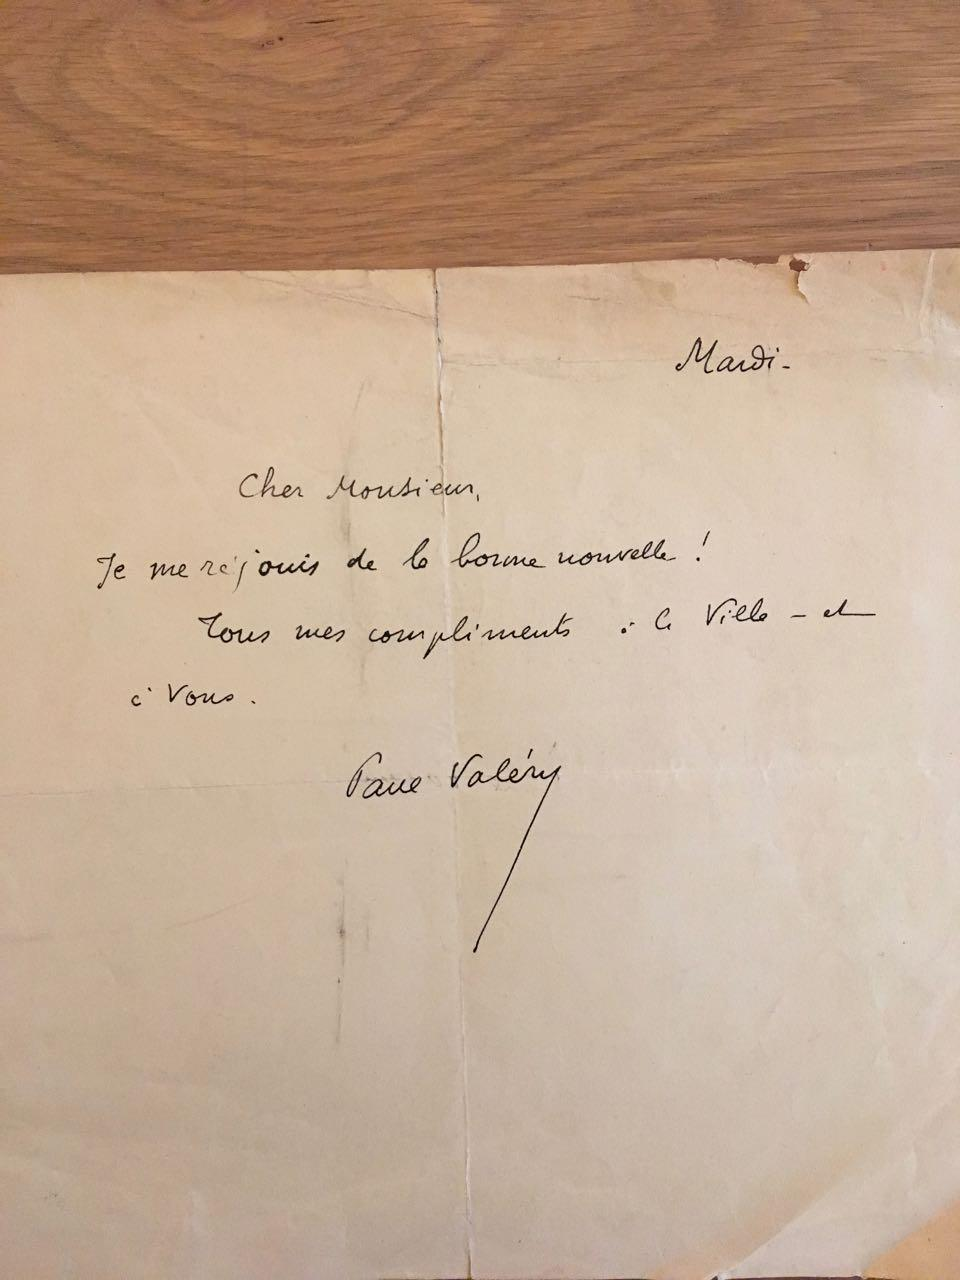 UN_BILLET_MANUSCRIT_SIGNÉ_ORIGINAL_DE_PAUL_VALÉRY_VALÉRIE_Paul_UN_BILLET_MANUSCRIT_SIGNÉ_ORIGINAL_DE_PAUL_VALÉRY_Bon_Couverture_souple